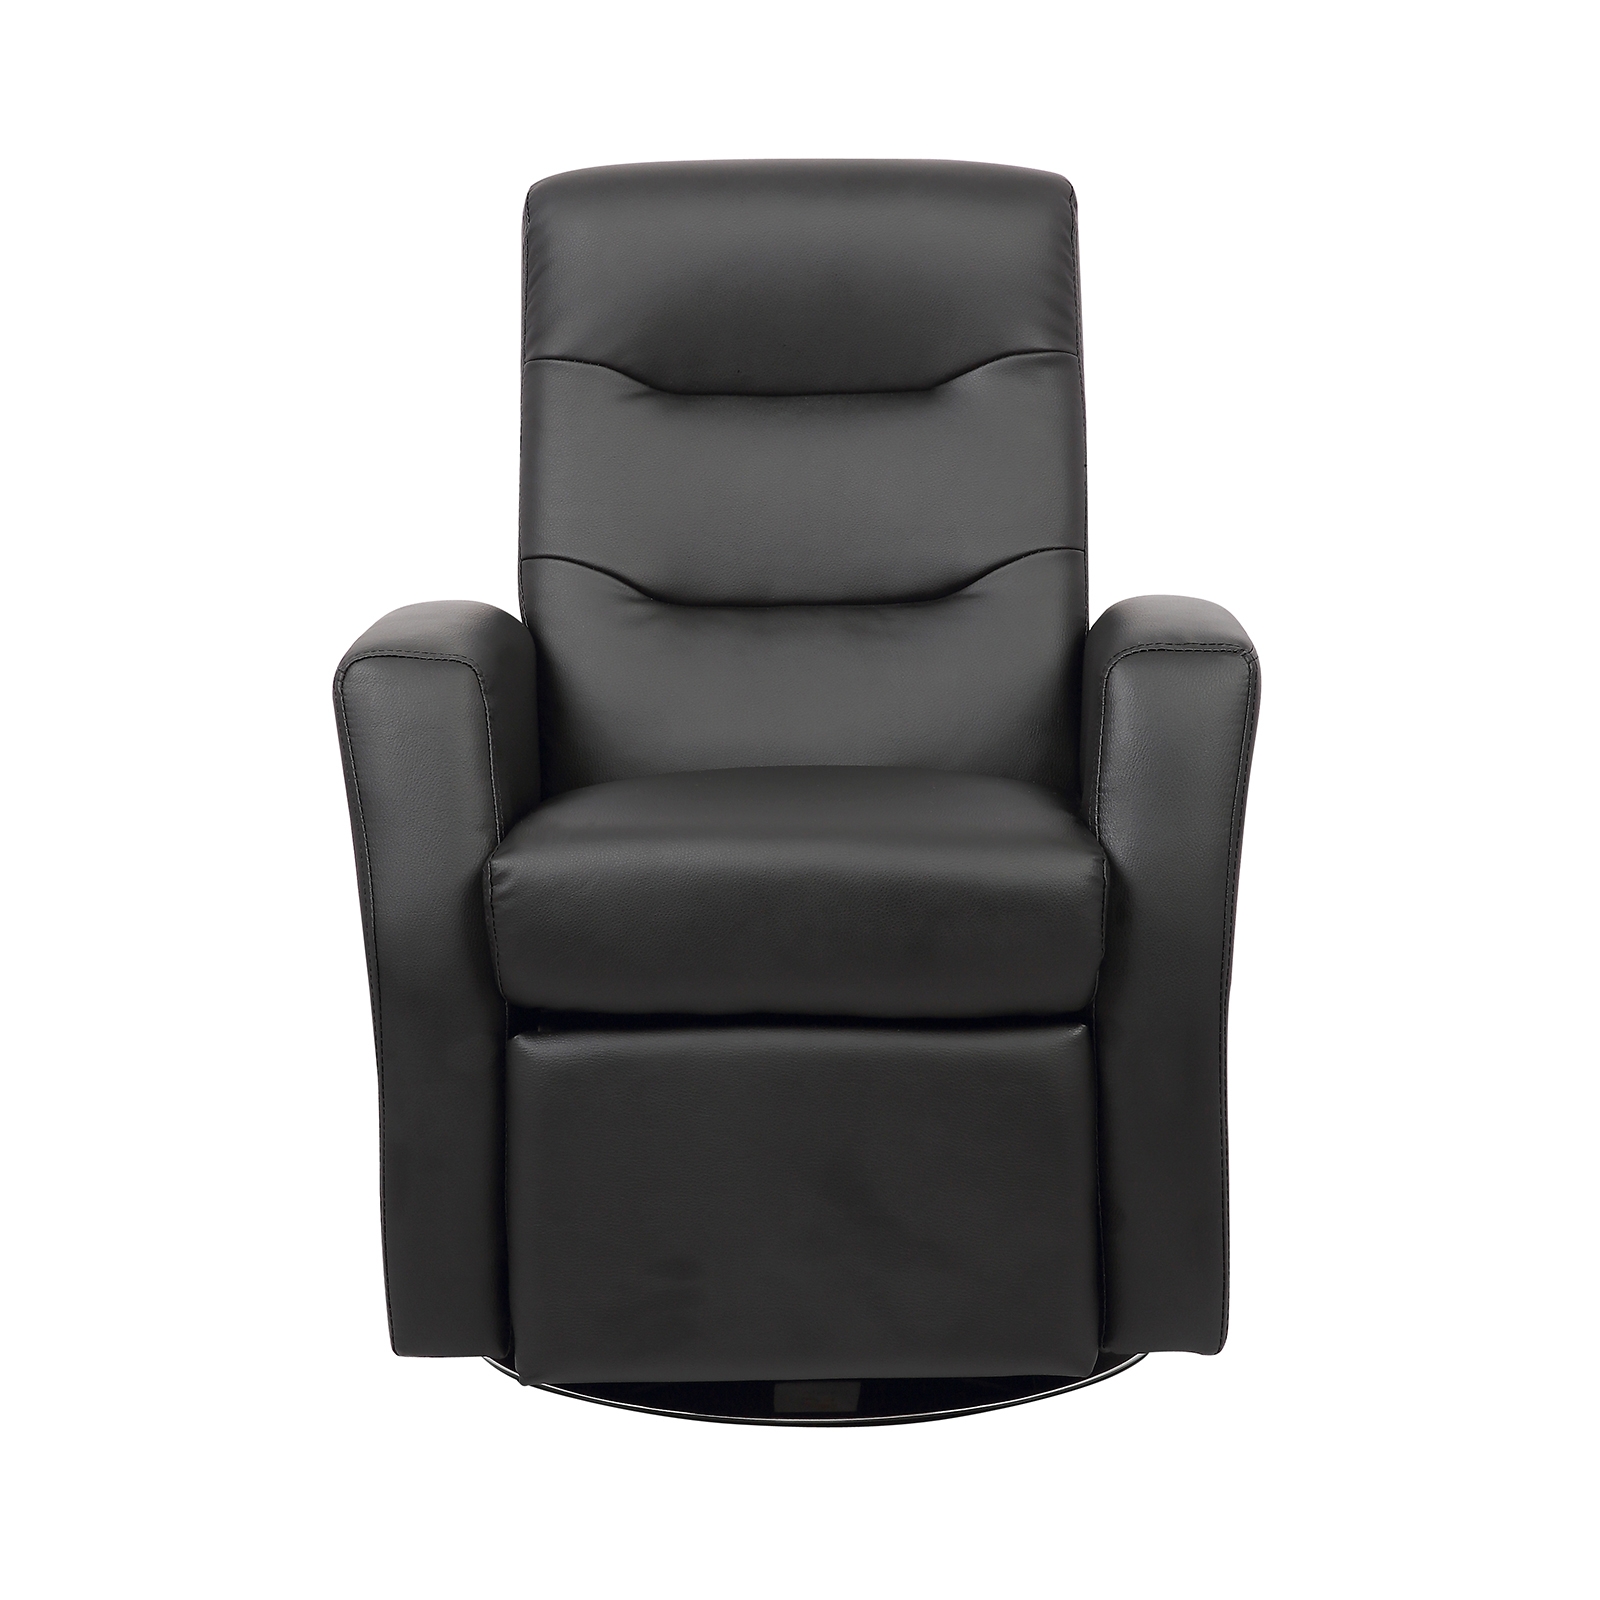 Childrens Luxurious Recliner Chair With Swivel Action Seat